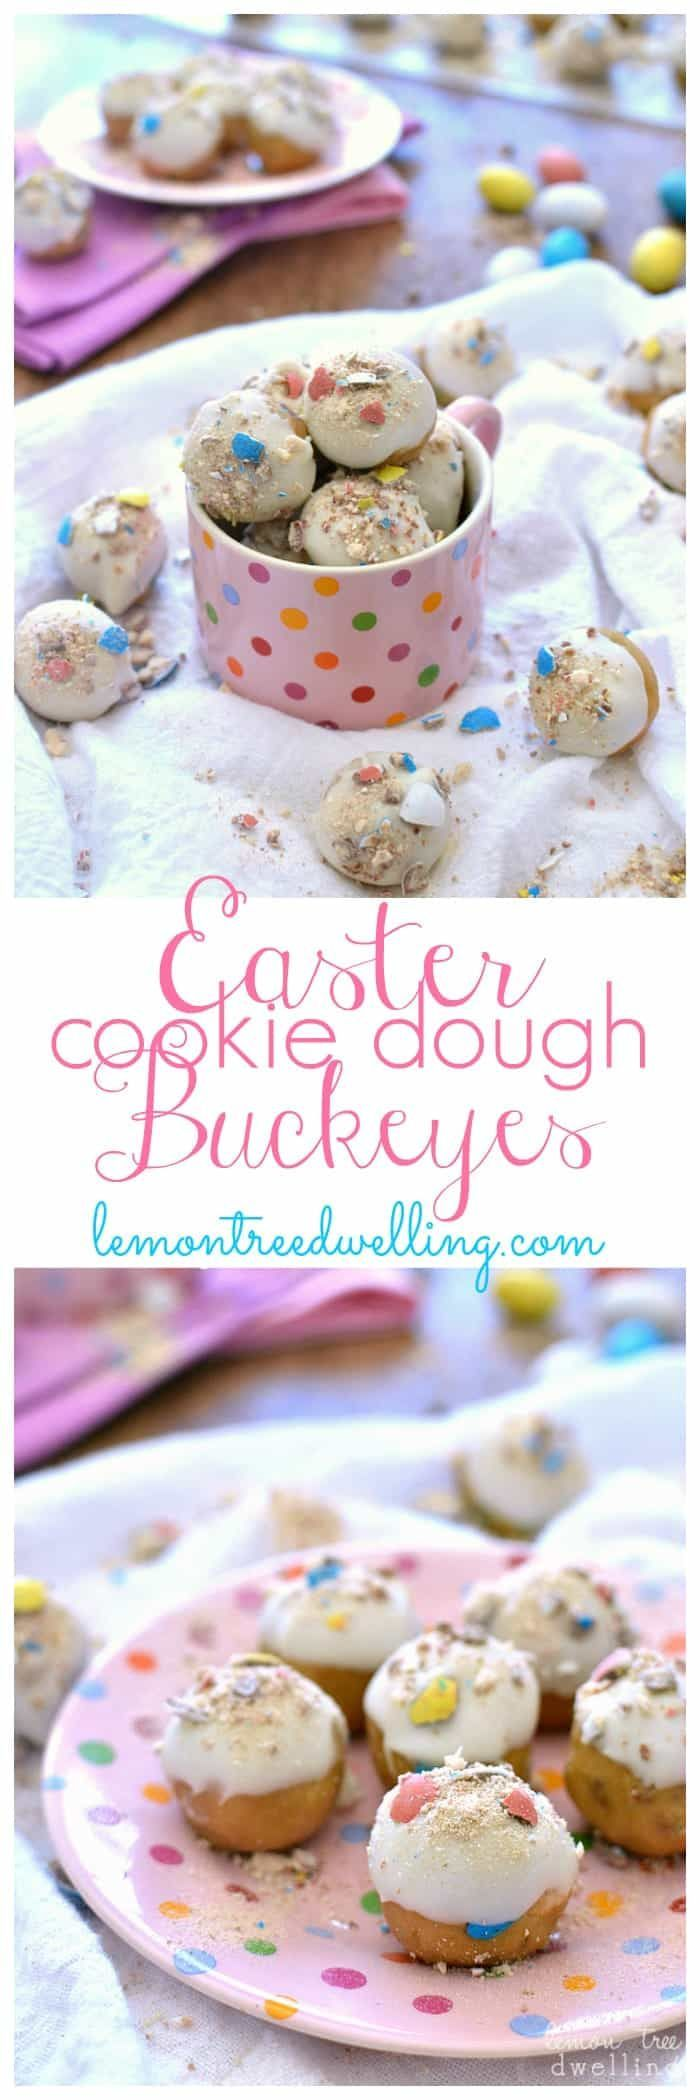 Easter Cookie Dough Buckeyes are made with peanut butter cookie dough and stuffed with malted milk balls and dipped in white chocolate. A pretty pastel sweet treat that's perfect for Easter!  I apologize in advance if you get bombarded with March Madness talk this week.....it's just that the Badgers are in the Final Four! And around here, that's exciting news!  I must admit - we started out the whole March Madness thing this year with a bit of a chip on our shoulders. Since Marqu...